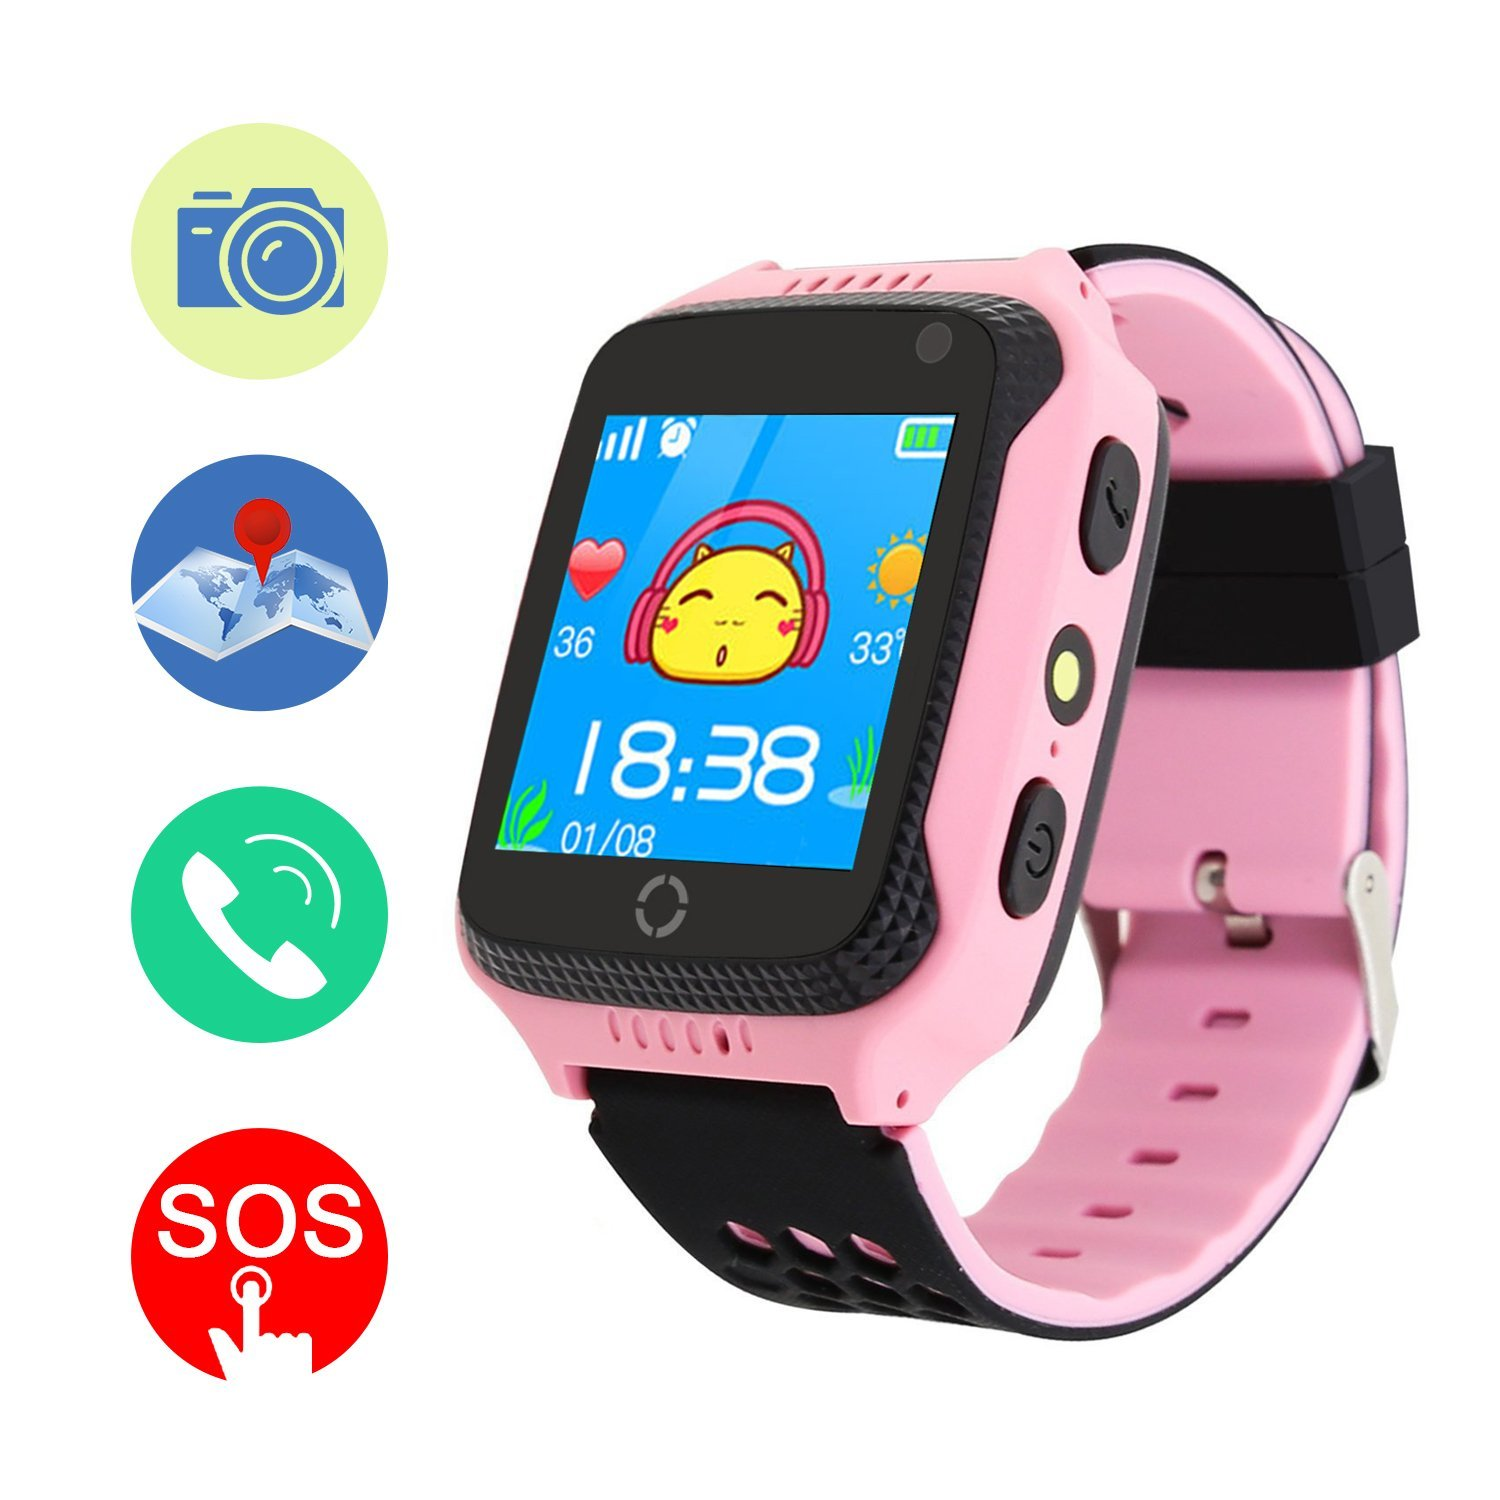 GPS Tracker Smart Watch, Mictchz Kids GPS Tracker Smart Watch with Camera SIM Calls SOS Anti-lost GPS + LBS Smart Watch for Children Boys Girls for Android iPhone Smartphone (Pink)